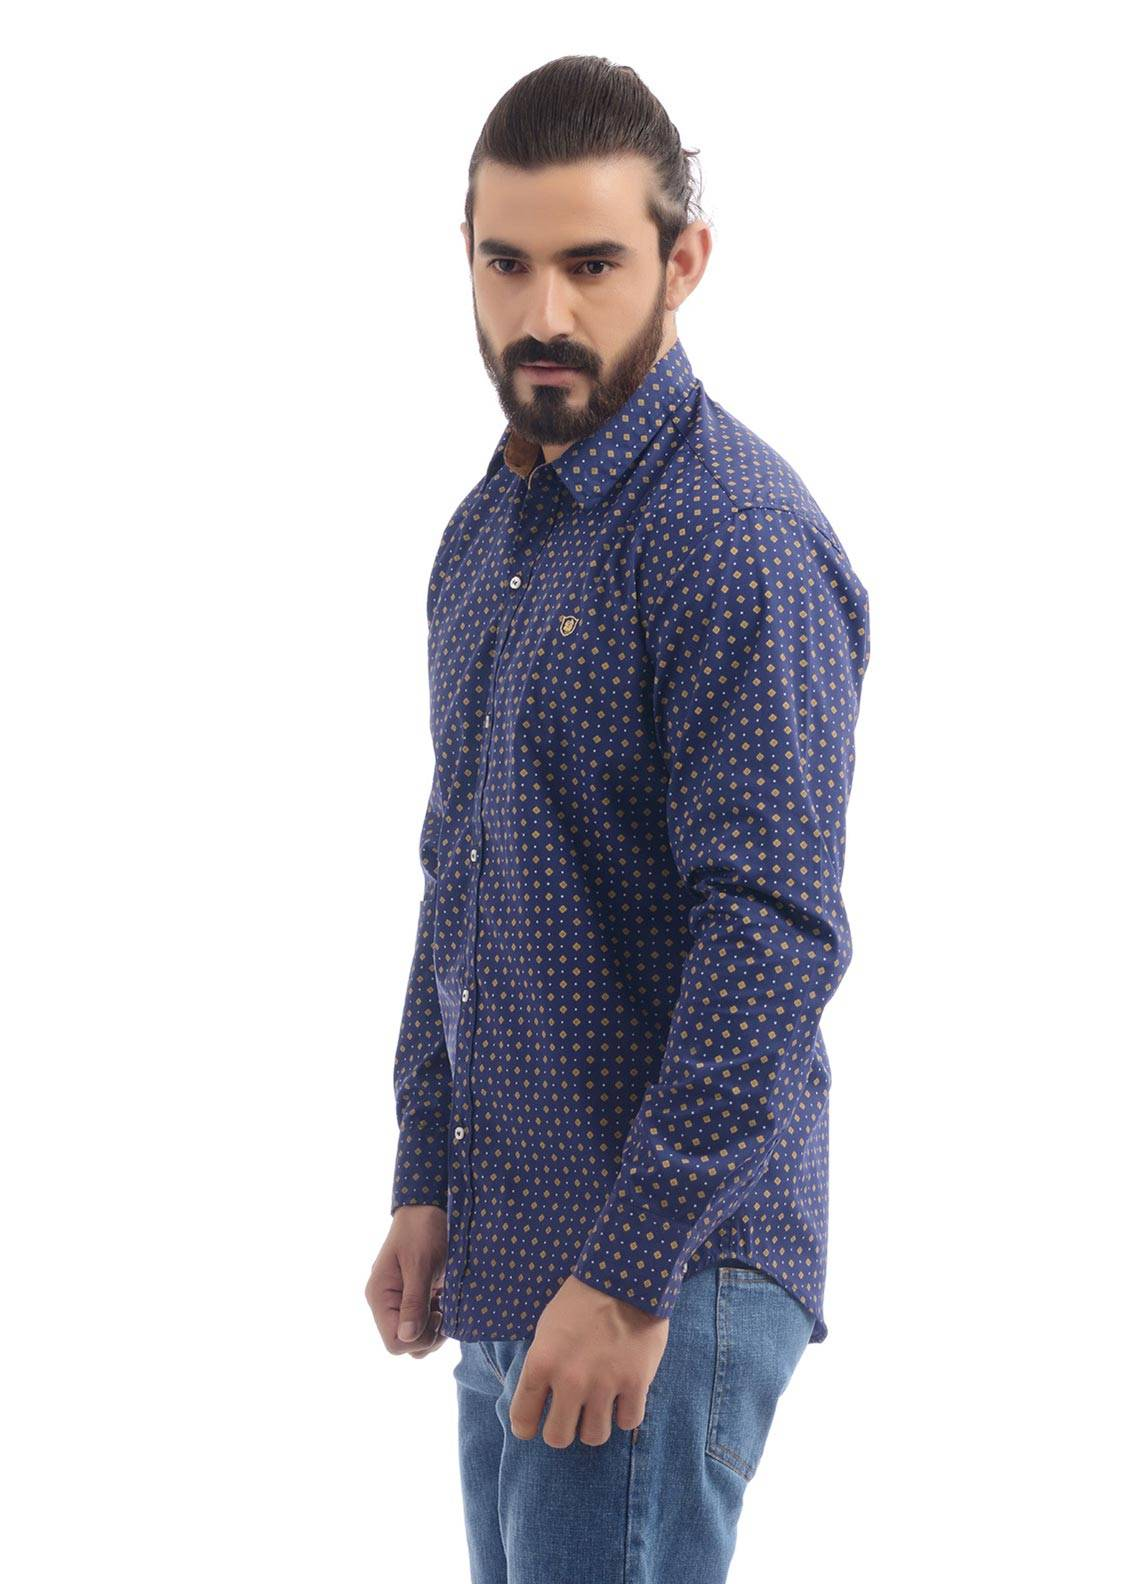 Shahzeb Saeed Cotton Casual Shirts for Men - Blue CSW-89